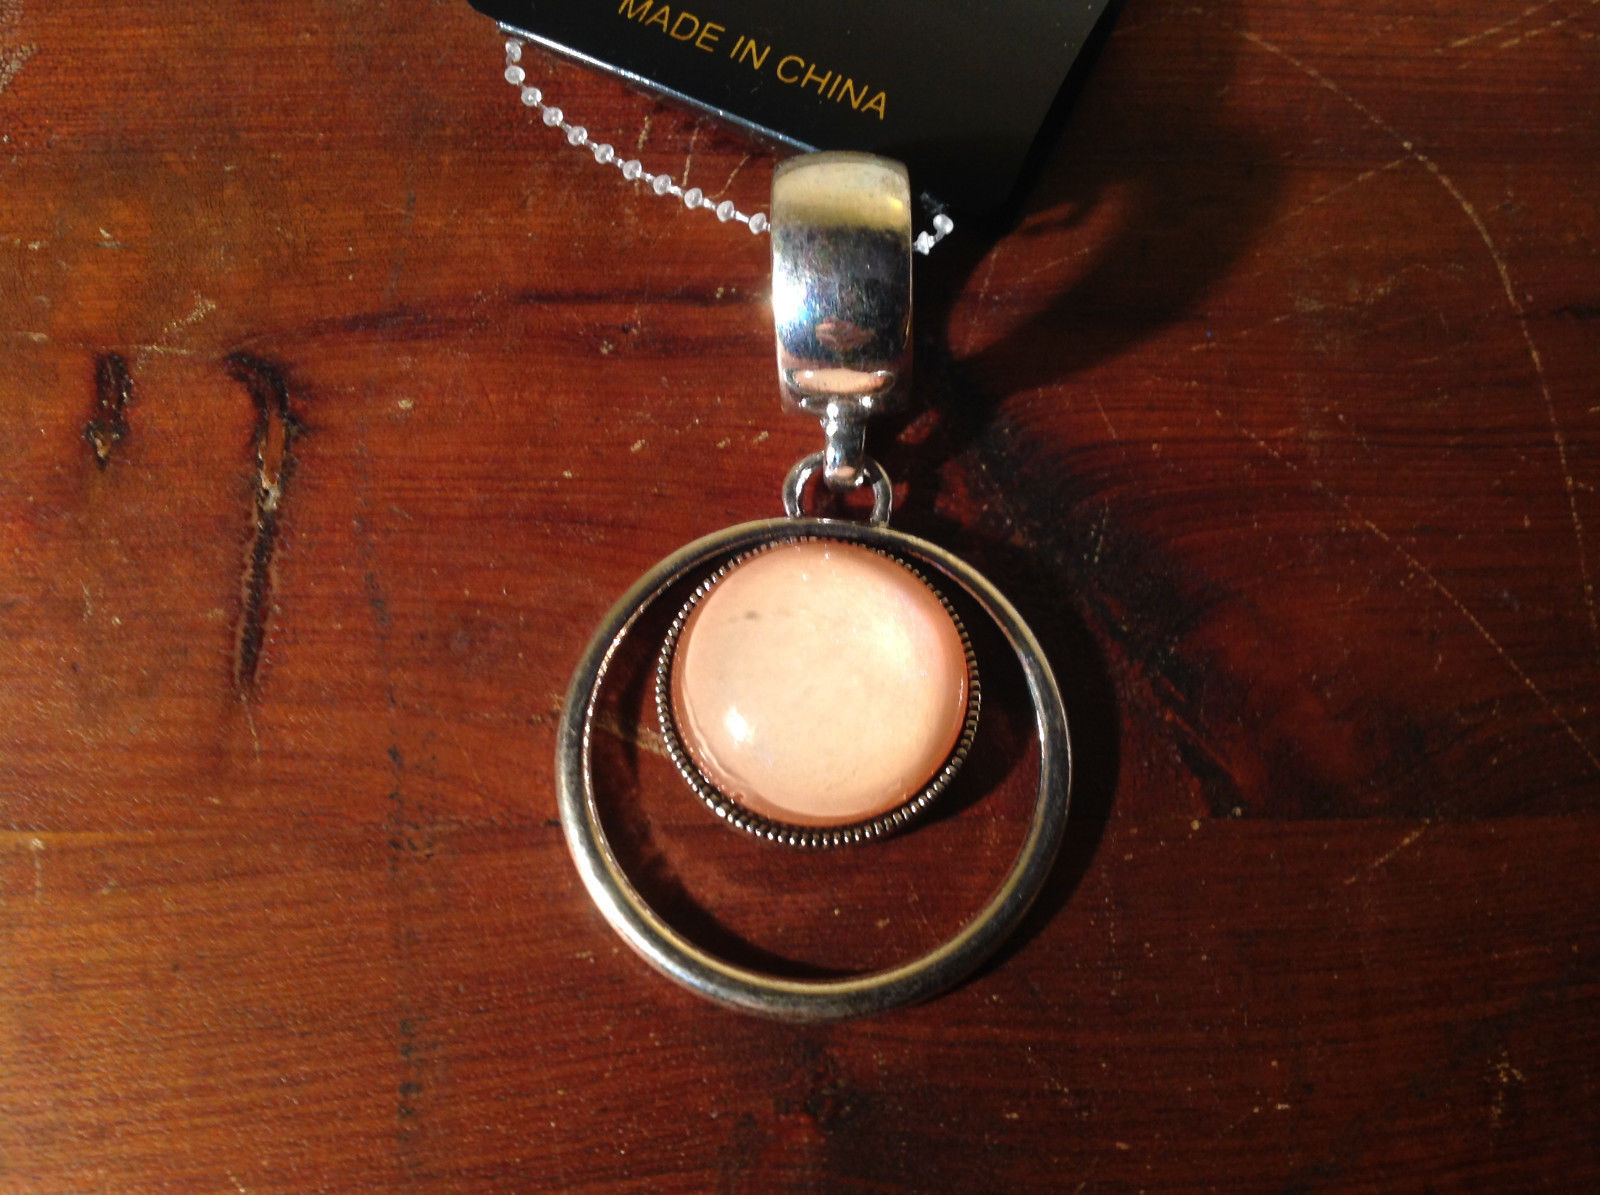 Striking Circular Silver Tone Scarf Pendant with Pinkish Stone by Magic Scarf